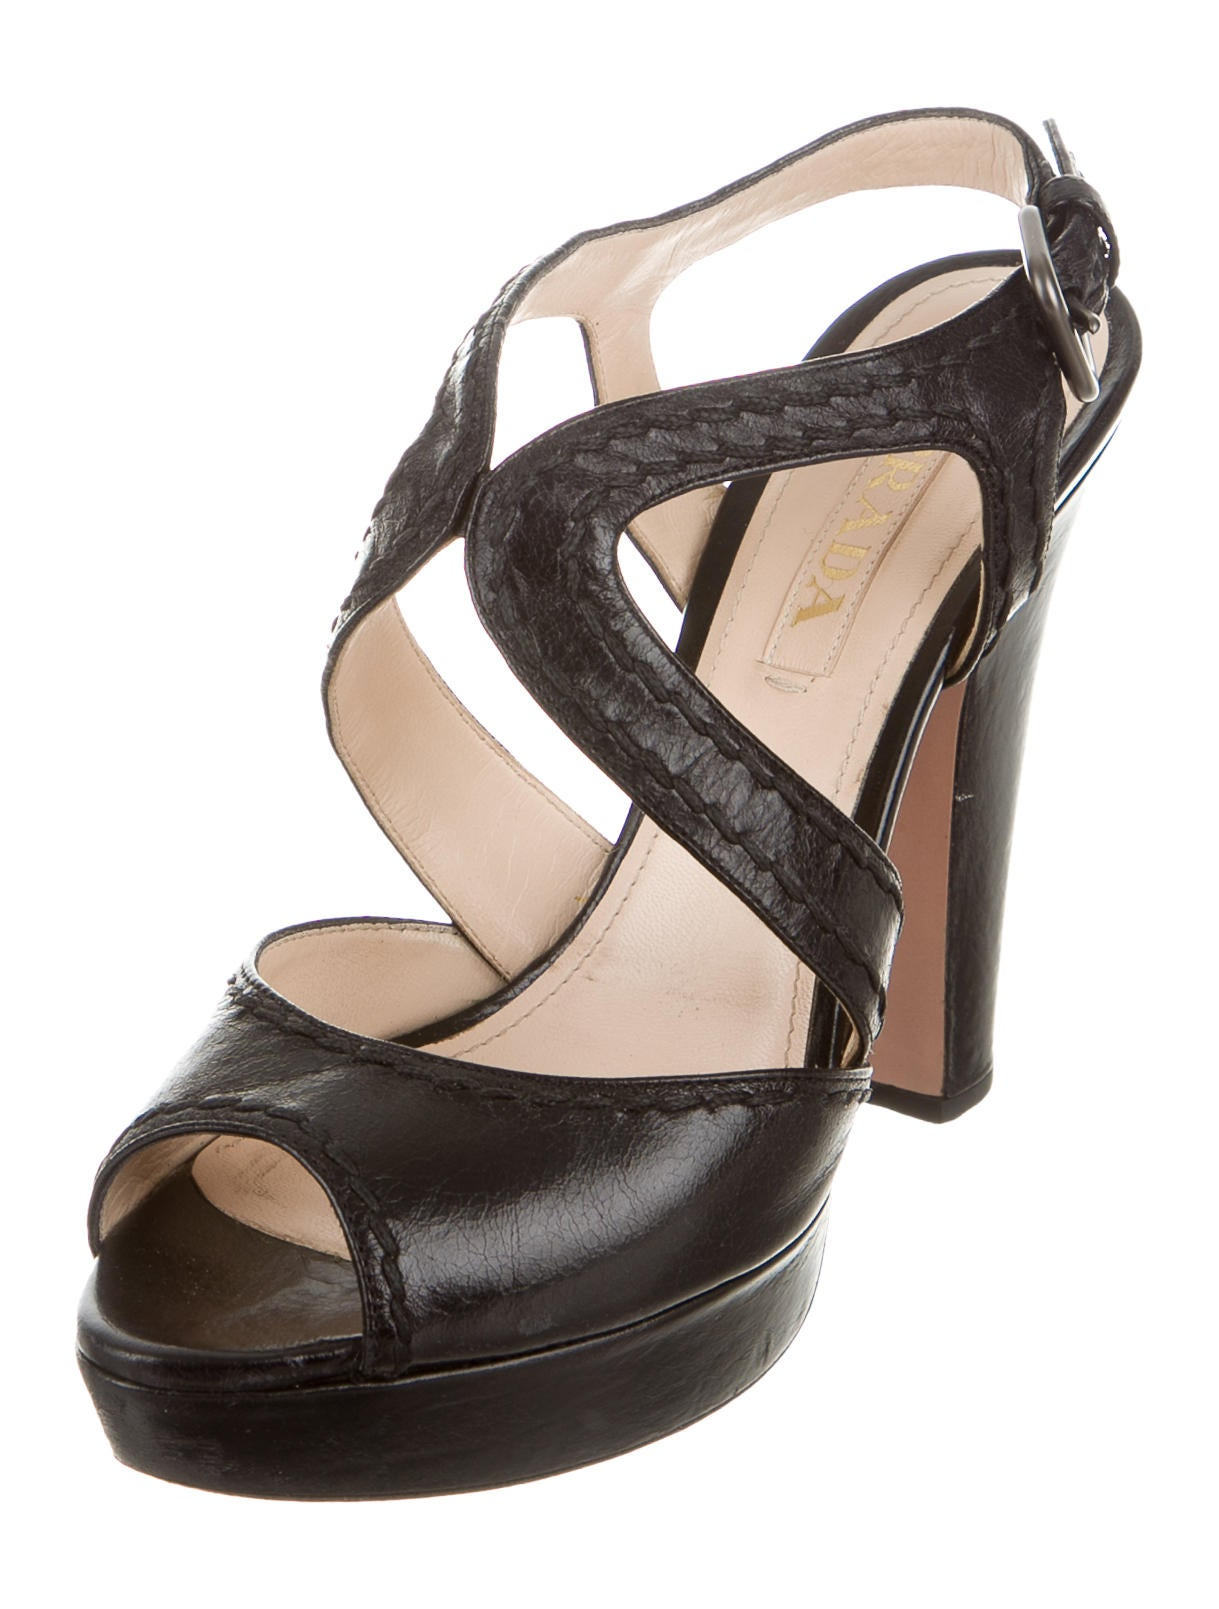 prada leather platform sandals shoes pra139816 the